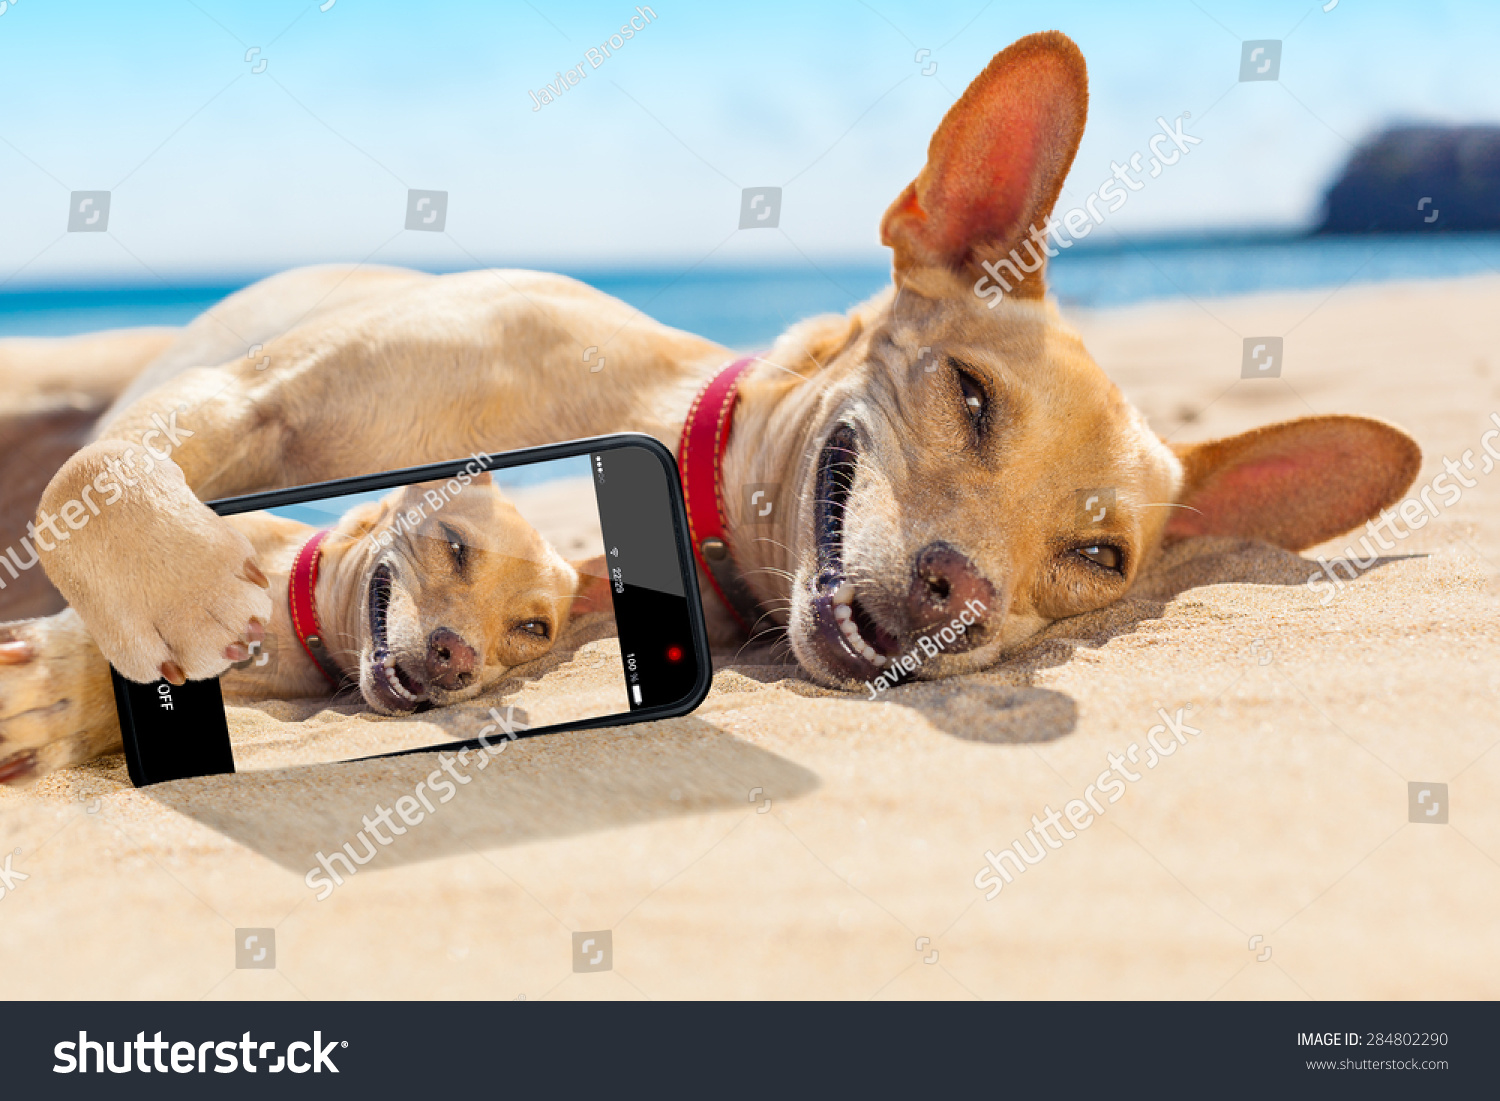 d65ef7b2d Chihuahua Dog Relaxing Resting Lying On Stock Photo (Edit Now ...